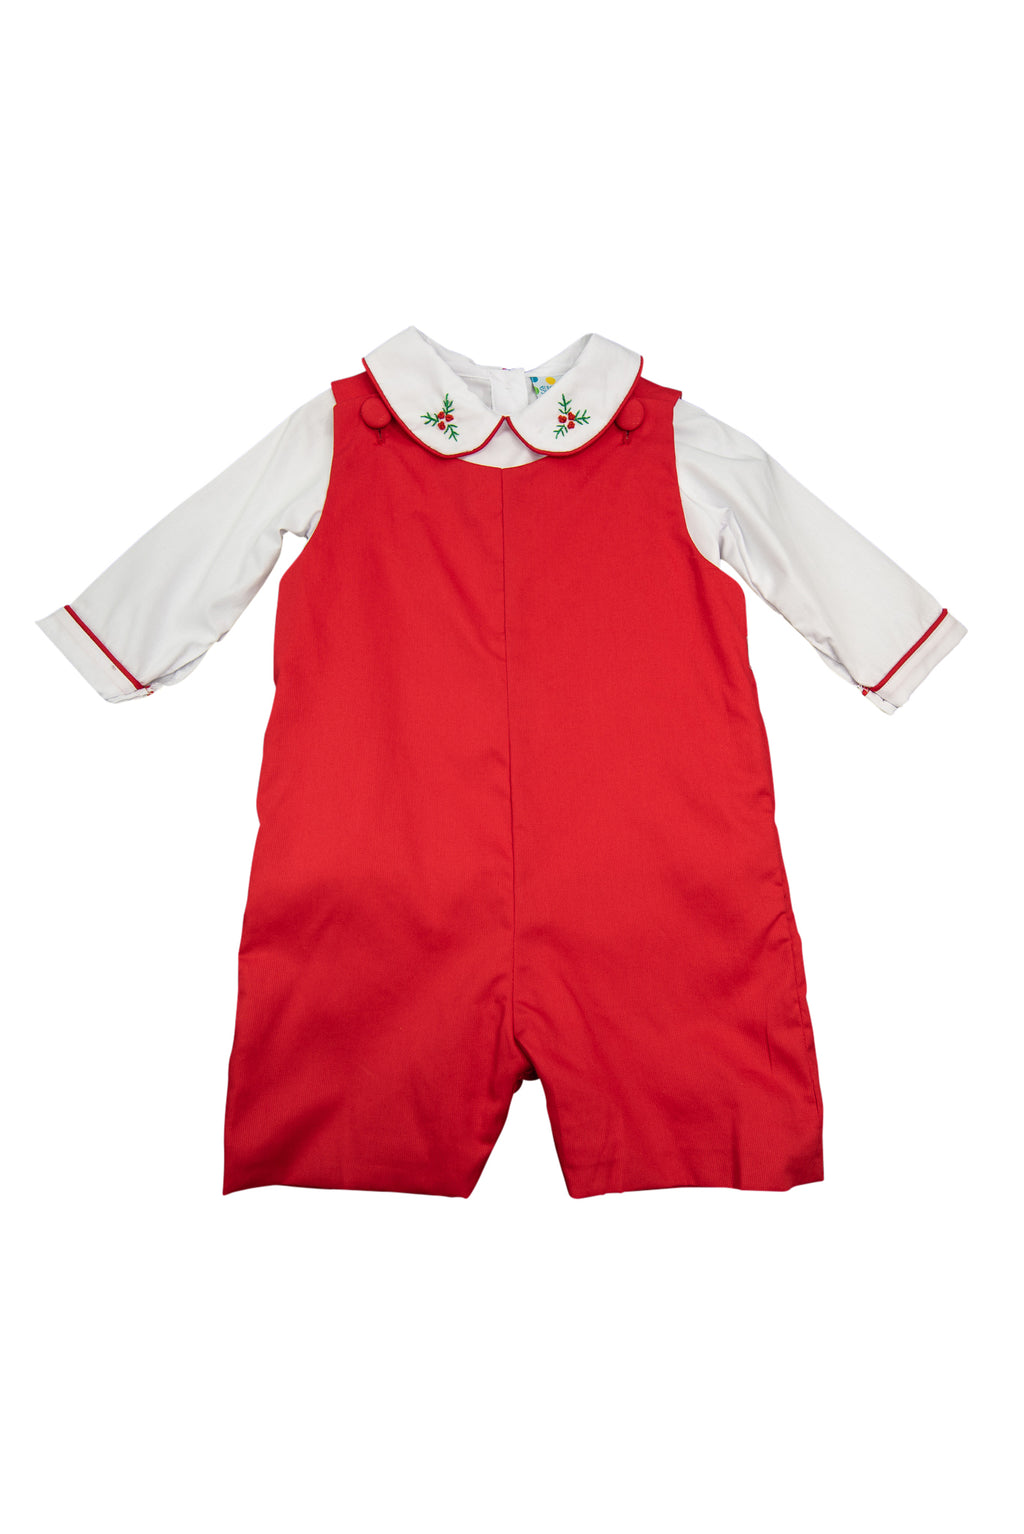 Boys White Holly Shortall Set